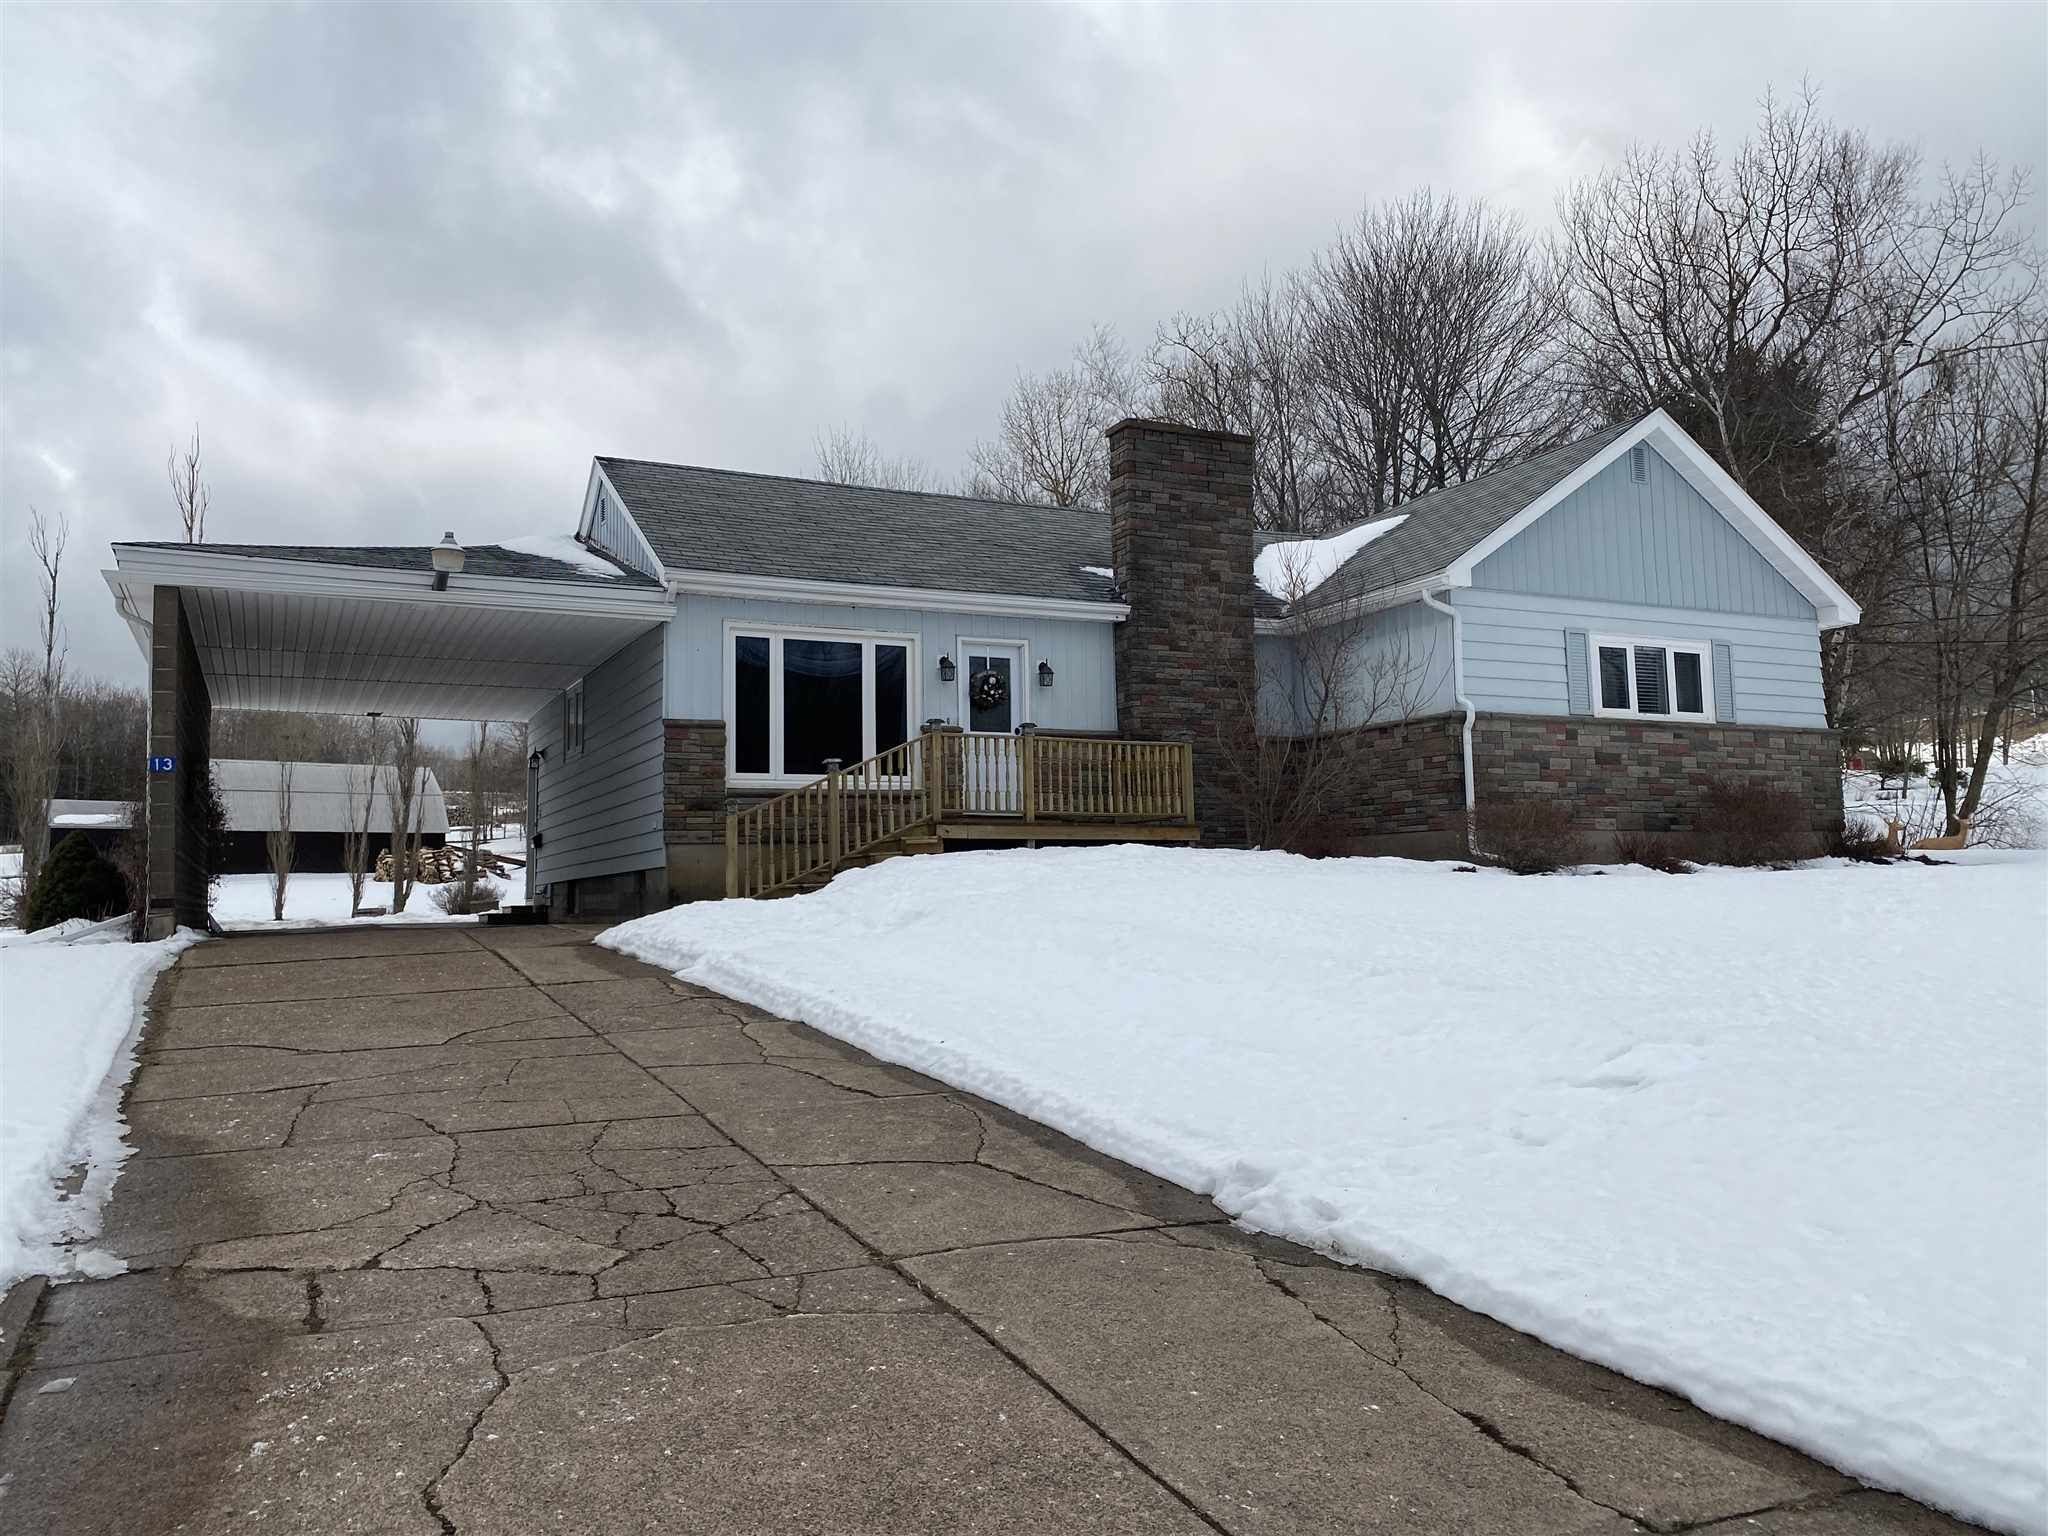 Main Photo: 13 Munroe Ave Ext in Westville Road: 108-Rural Pictou County Residential for sale (Northern Region)  : MLS®# 202103450